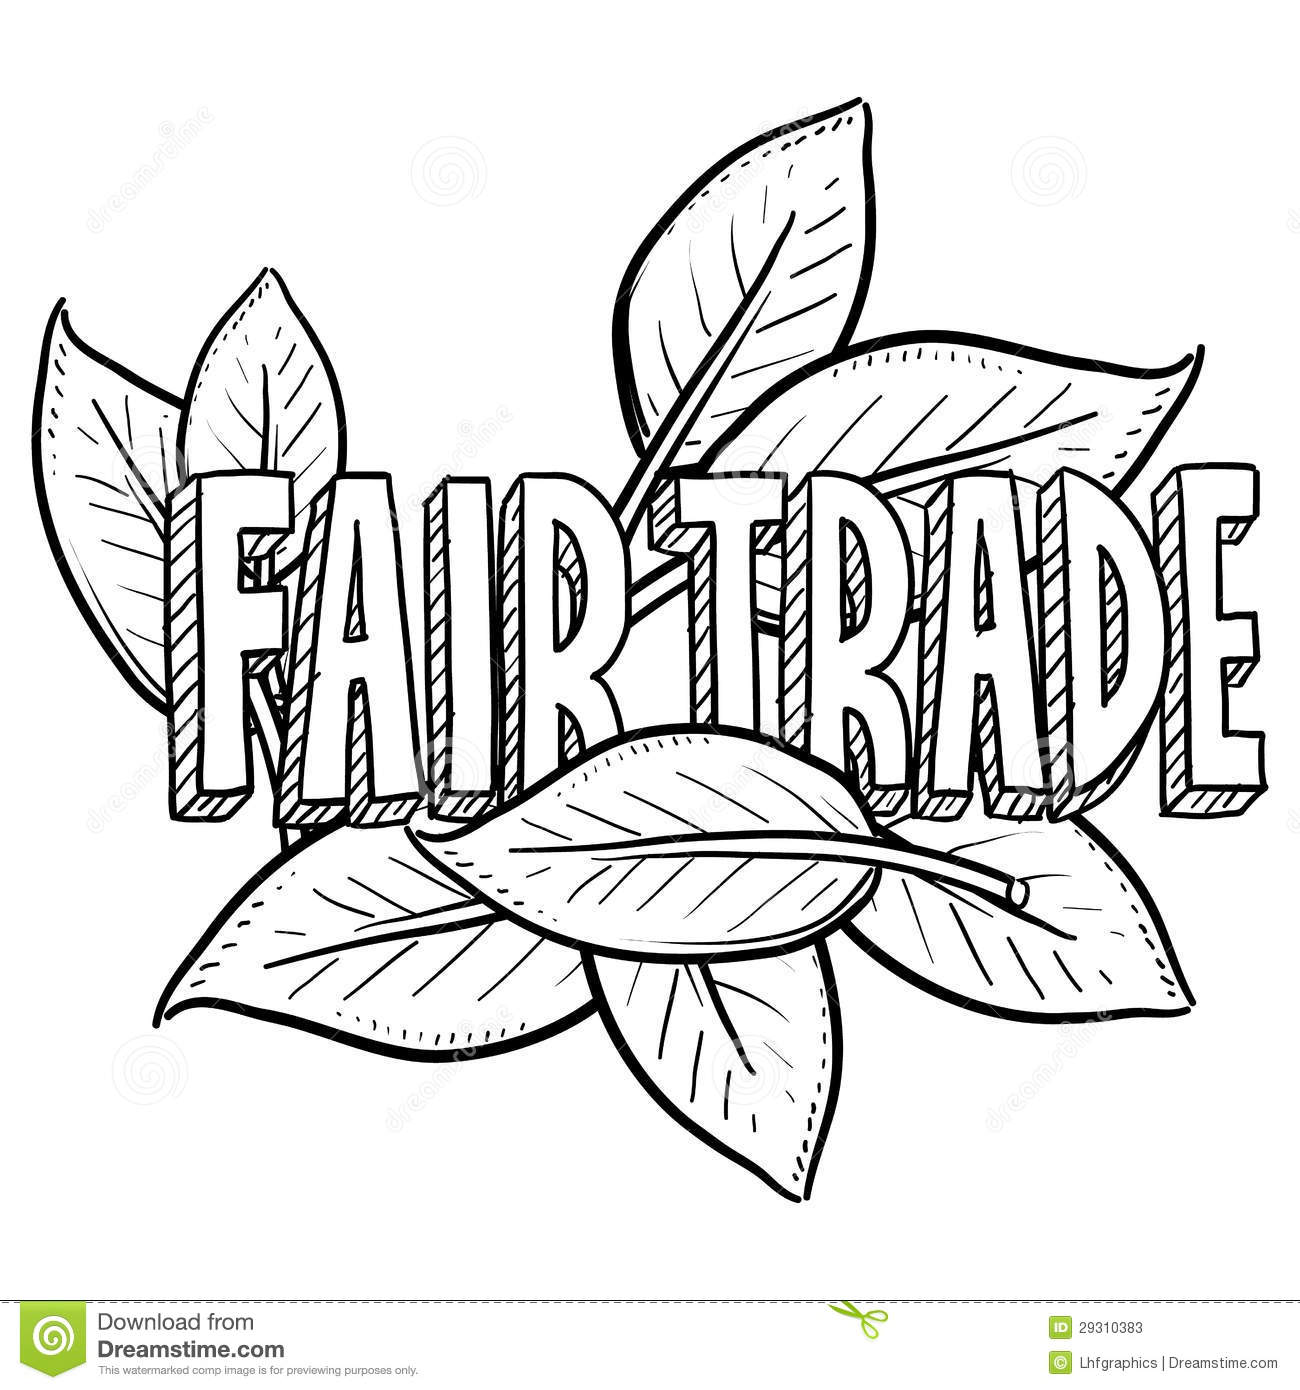 Trade fair clipart - Clipground